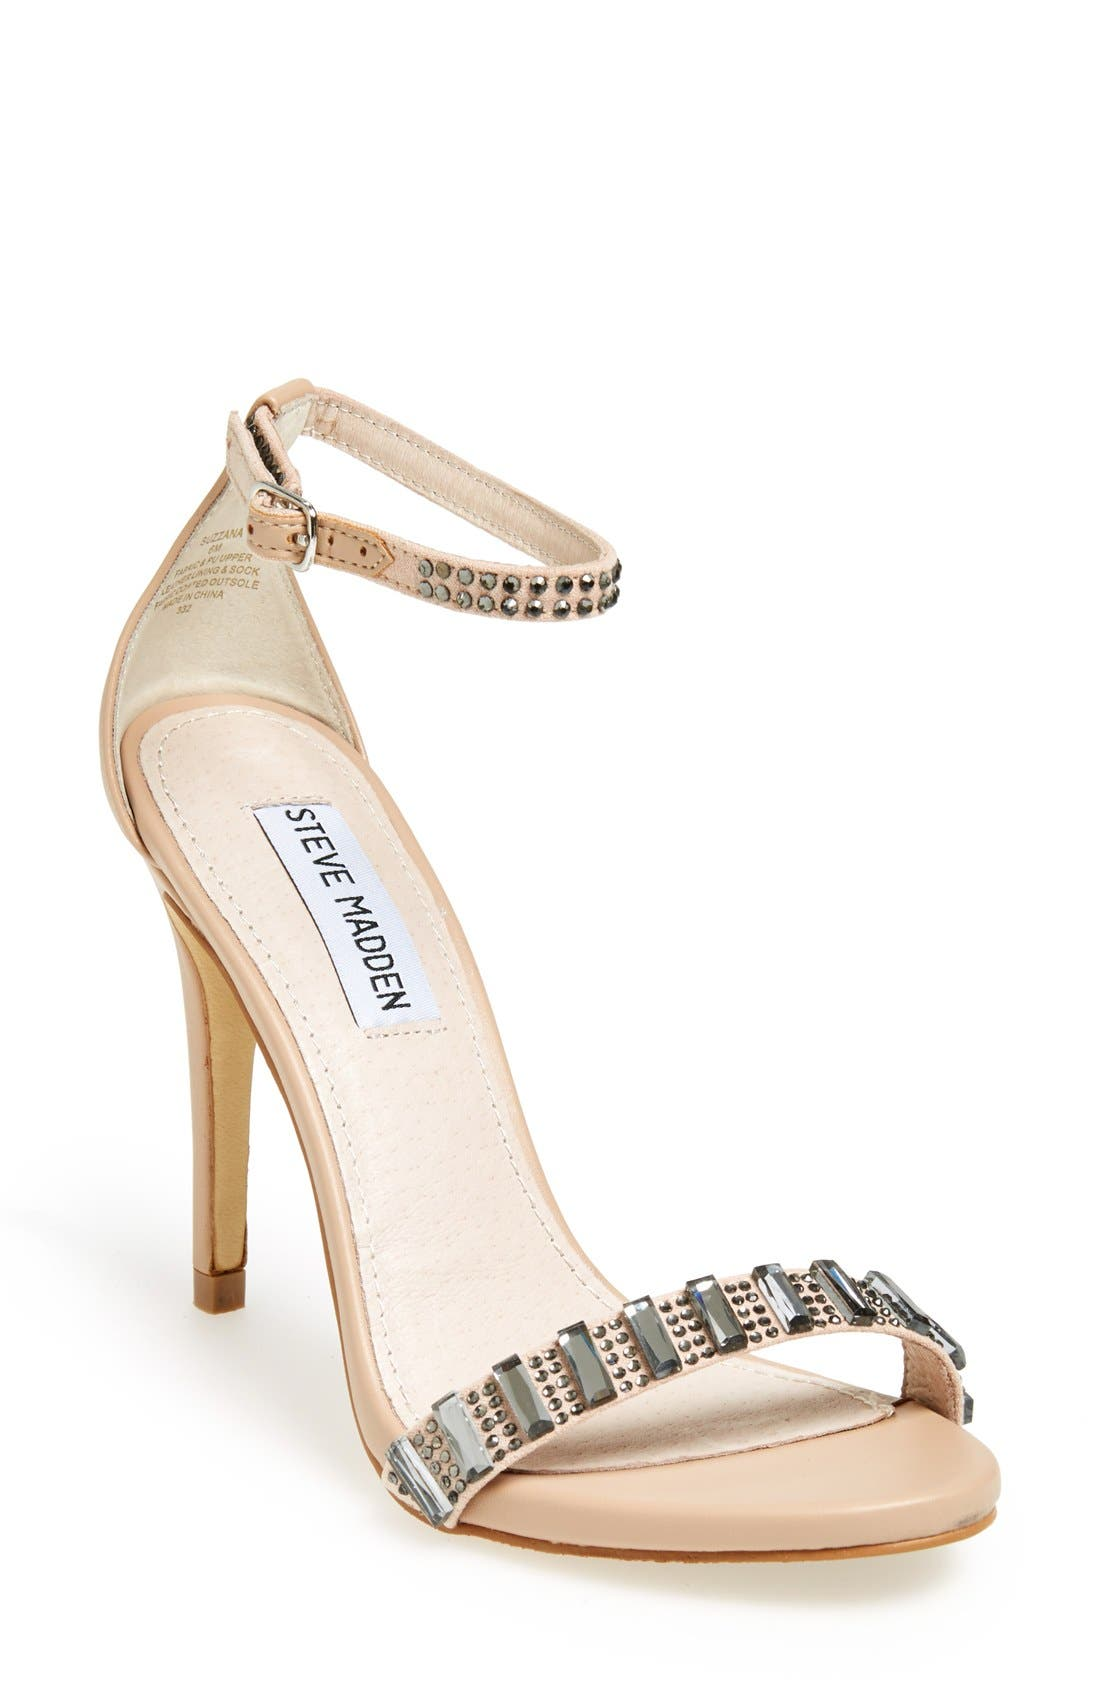 Alternate Image 1 Selected - Steve Madden 'Suzzana' Sandal (Women)